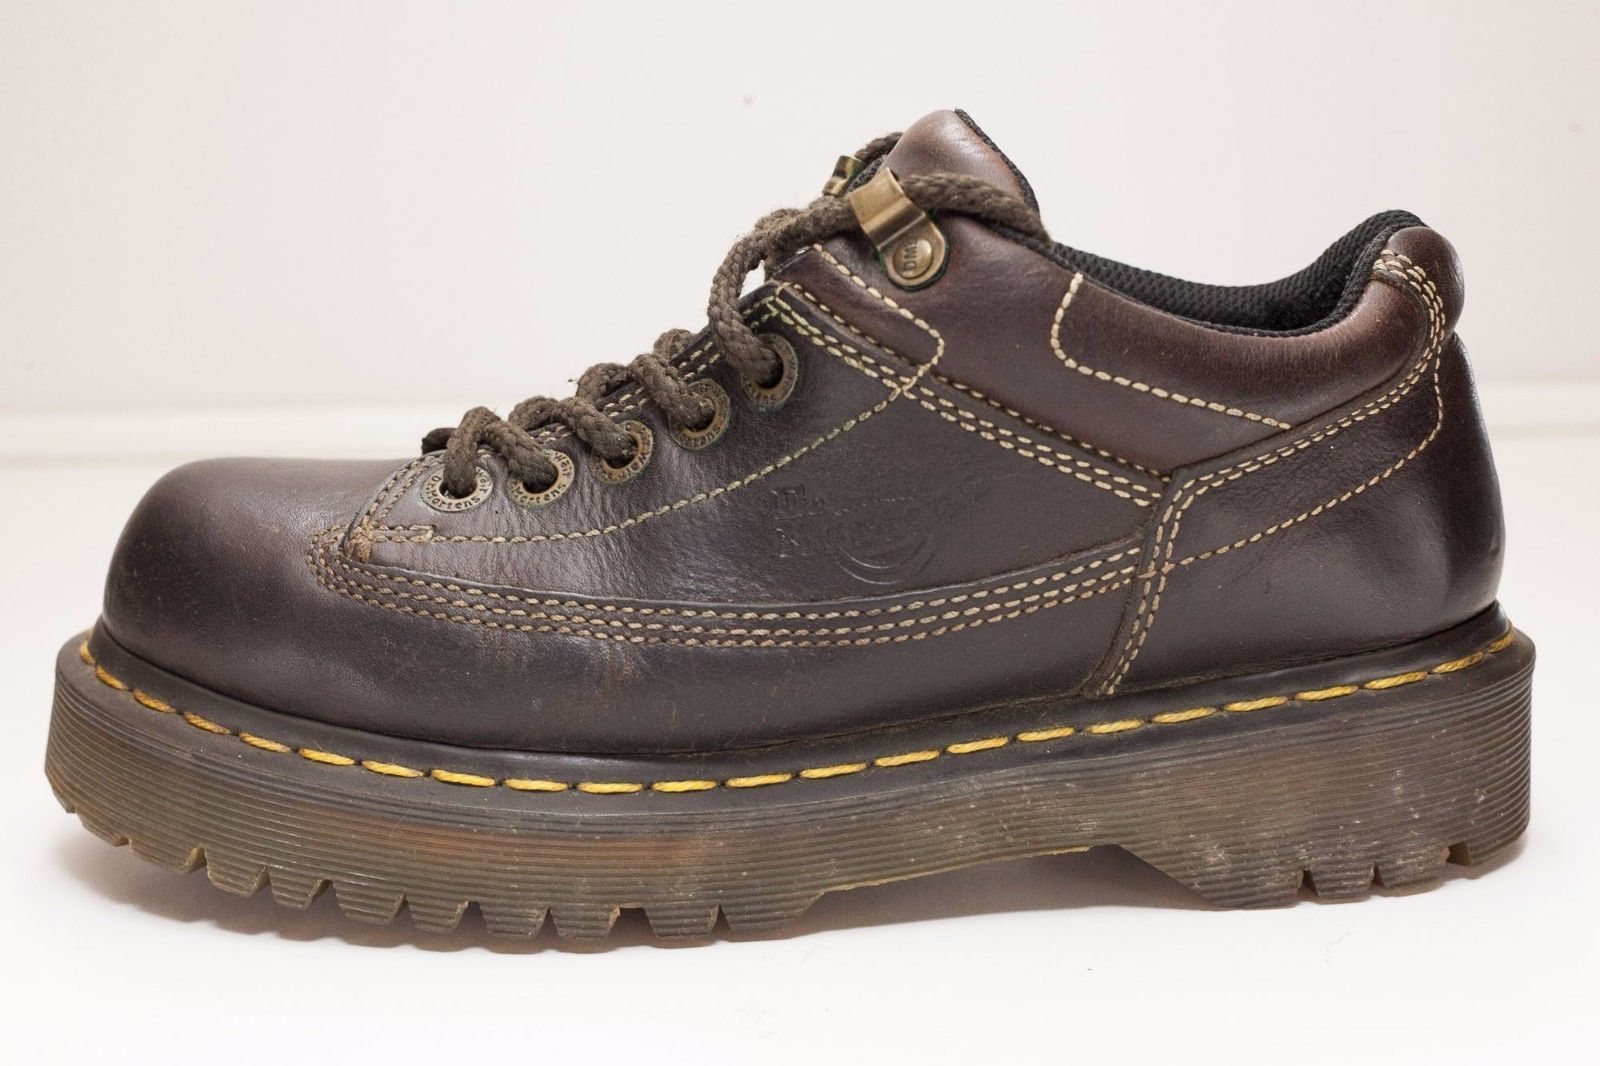 Dr. Martens 7 Brown Lace Up EU 38 Women's - $38.00